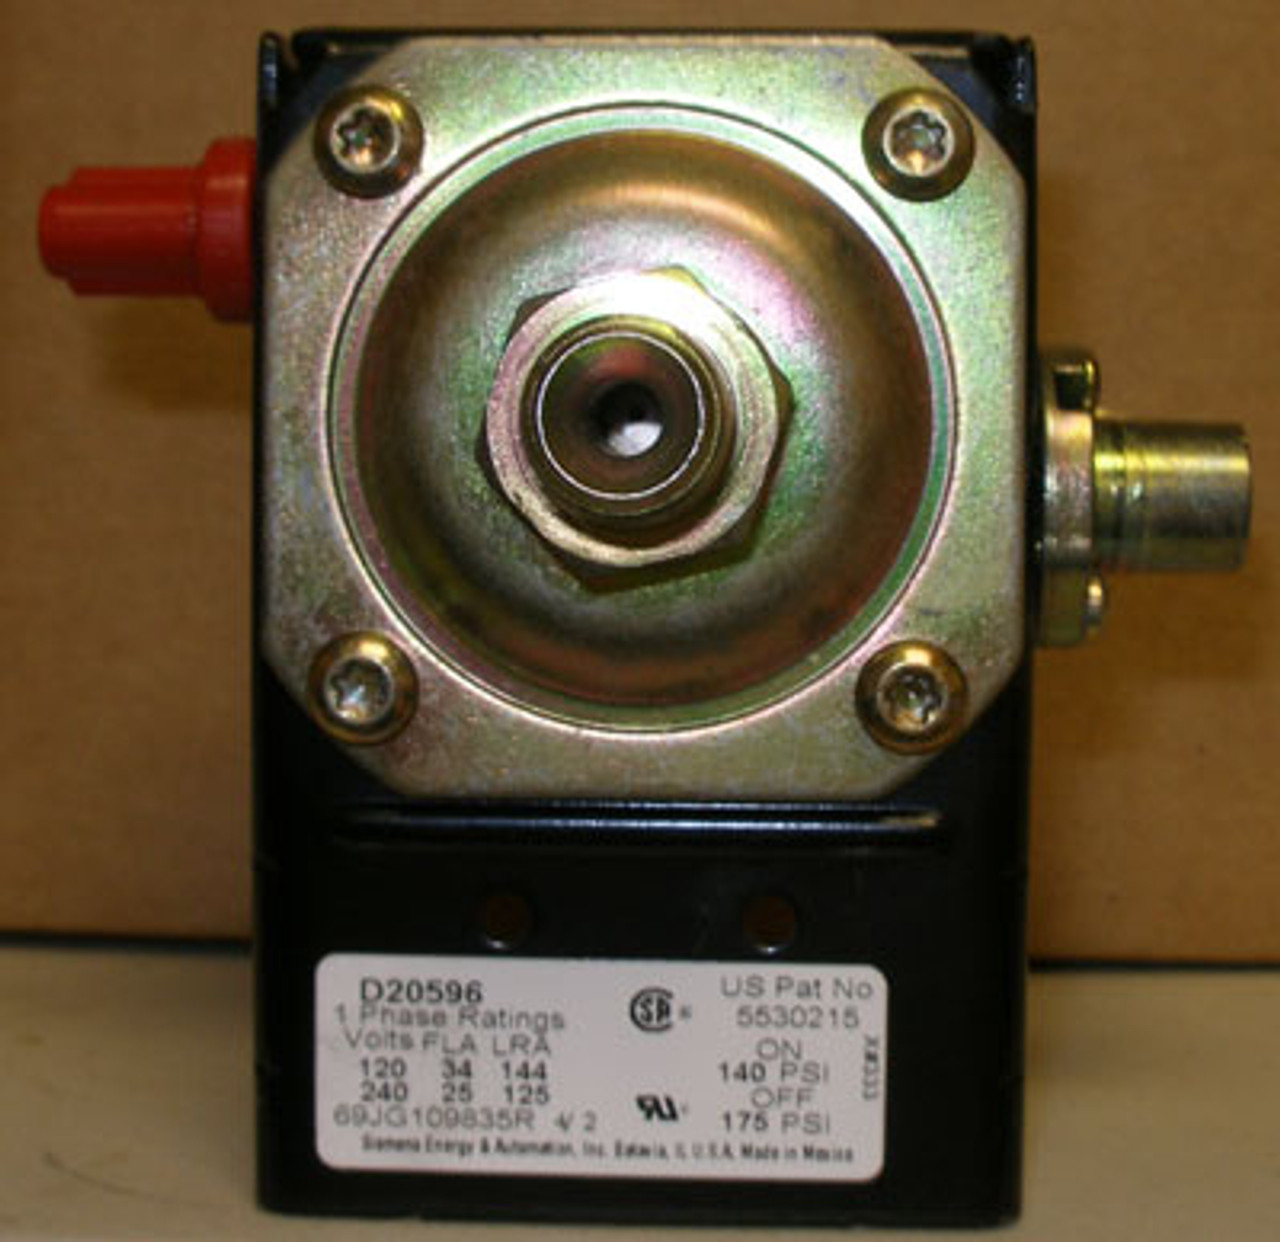 Siemens D20596 1 Ph Pressure Switch (140 PSI)(120-V) - COVER NOT INCL. - New